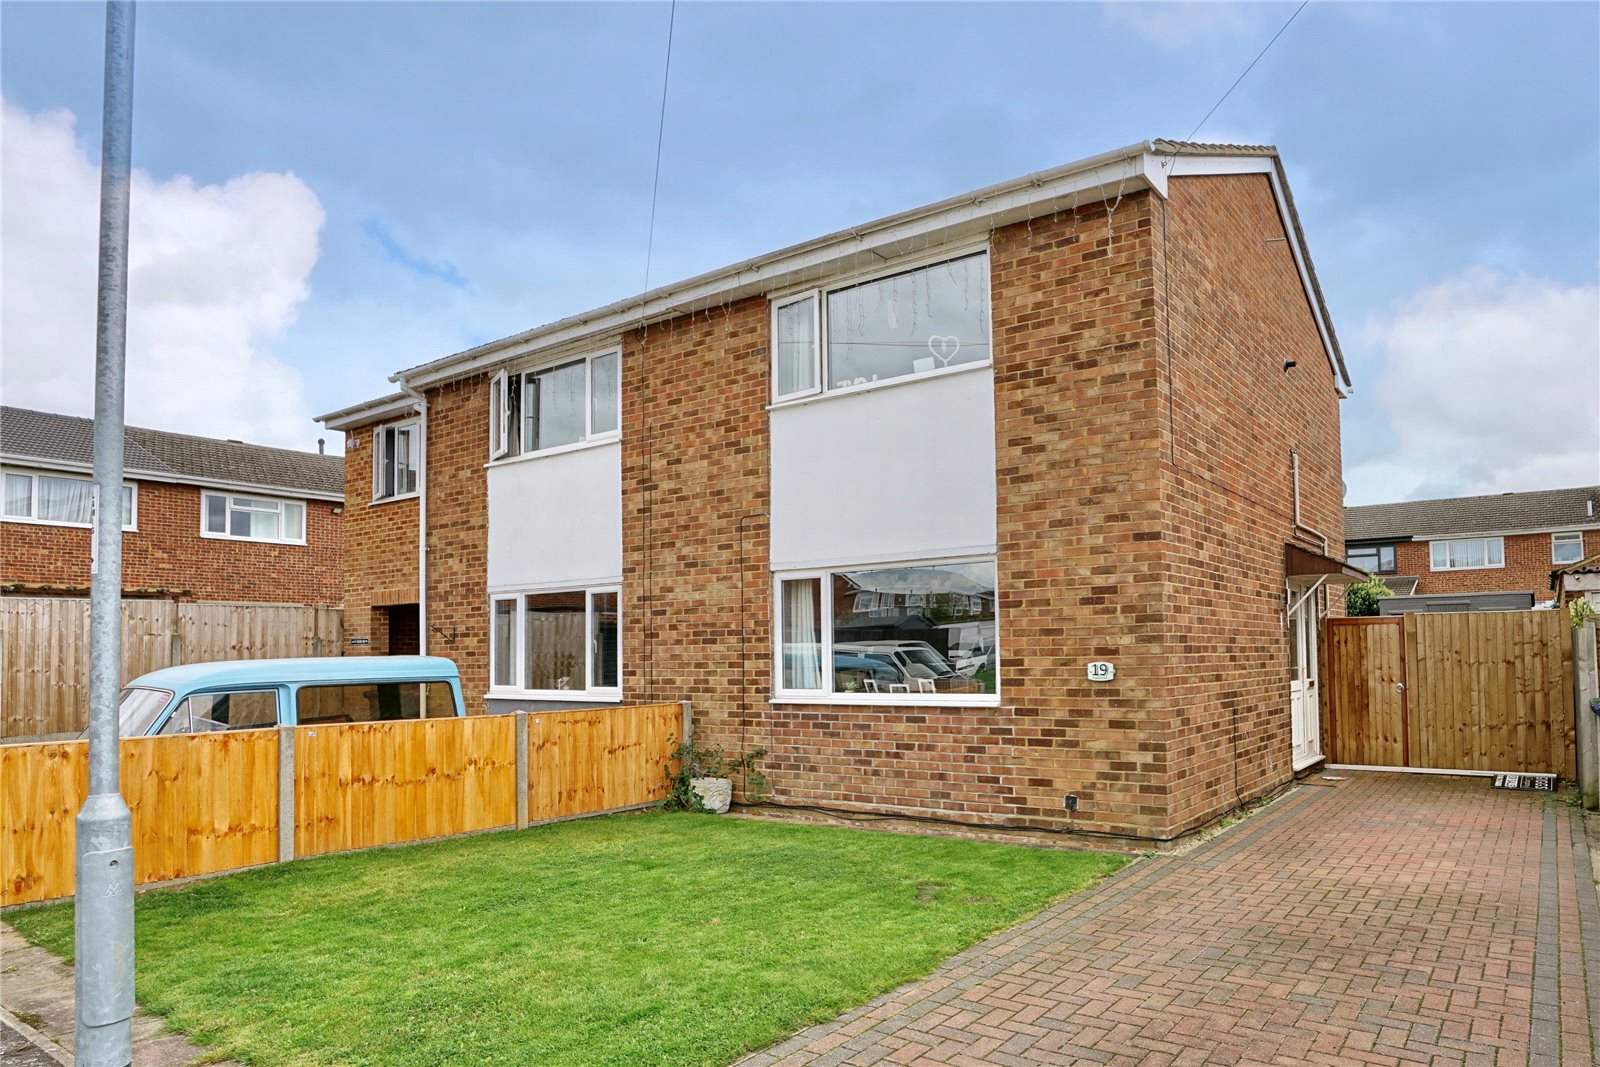 2 bed house for sale in Eynesbury, Edward Road, PE19 2QF, PE19